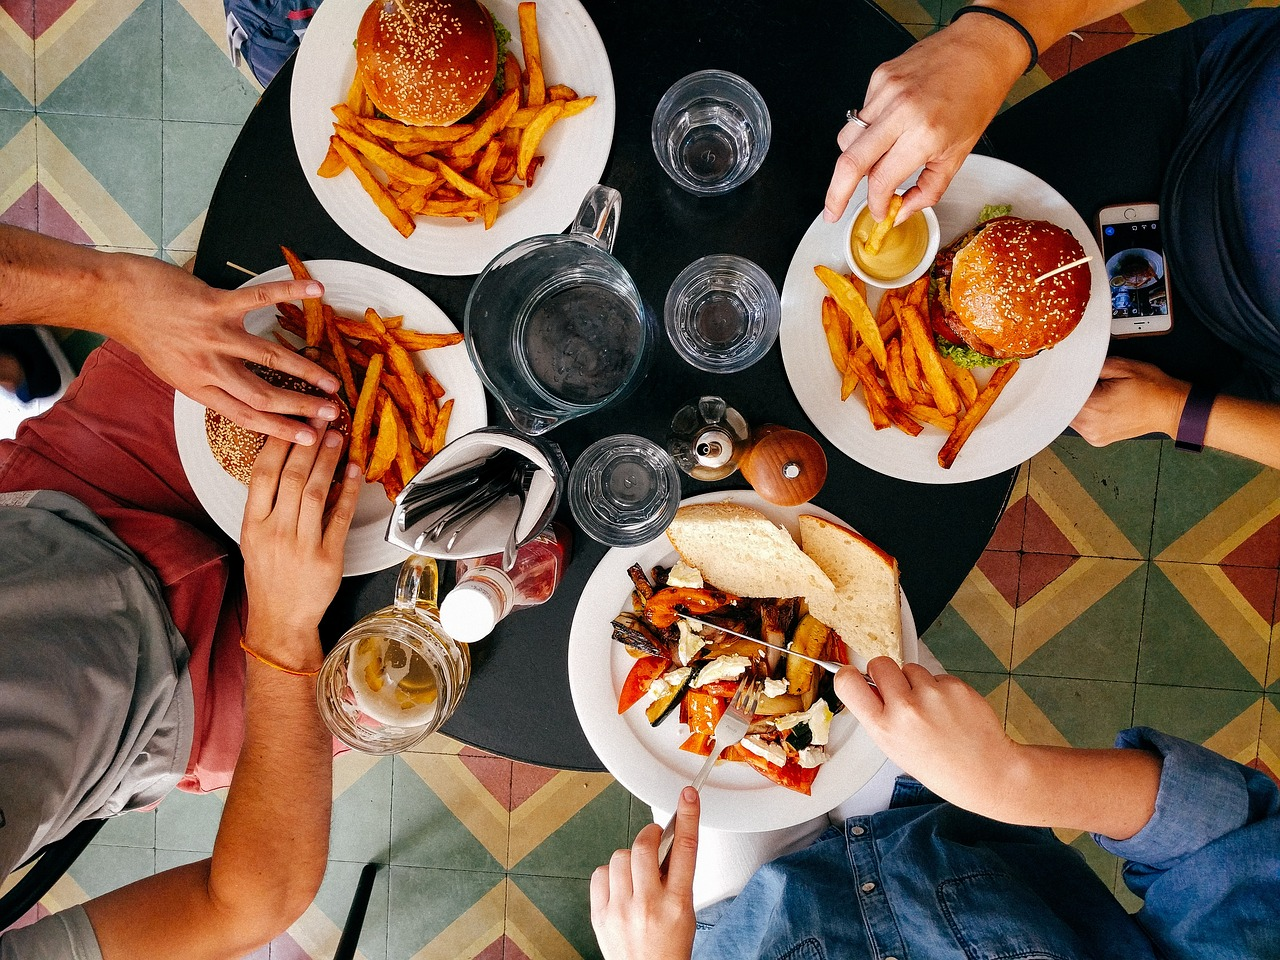 The Inconvenient Truth About Convenience Food - Why Convenience Food Is Bad For You